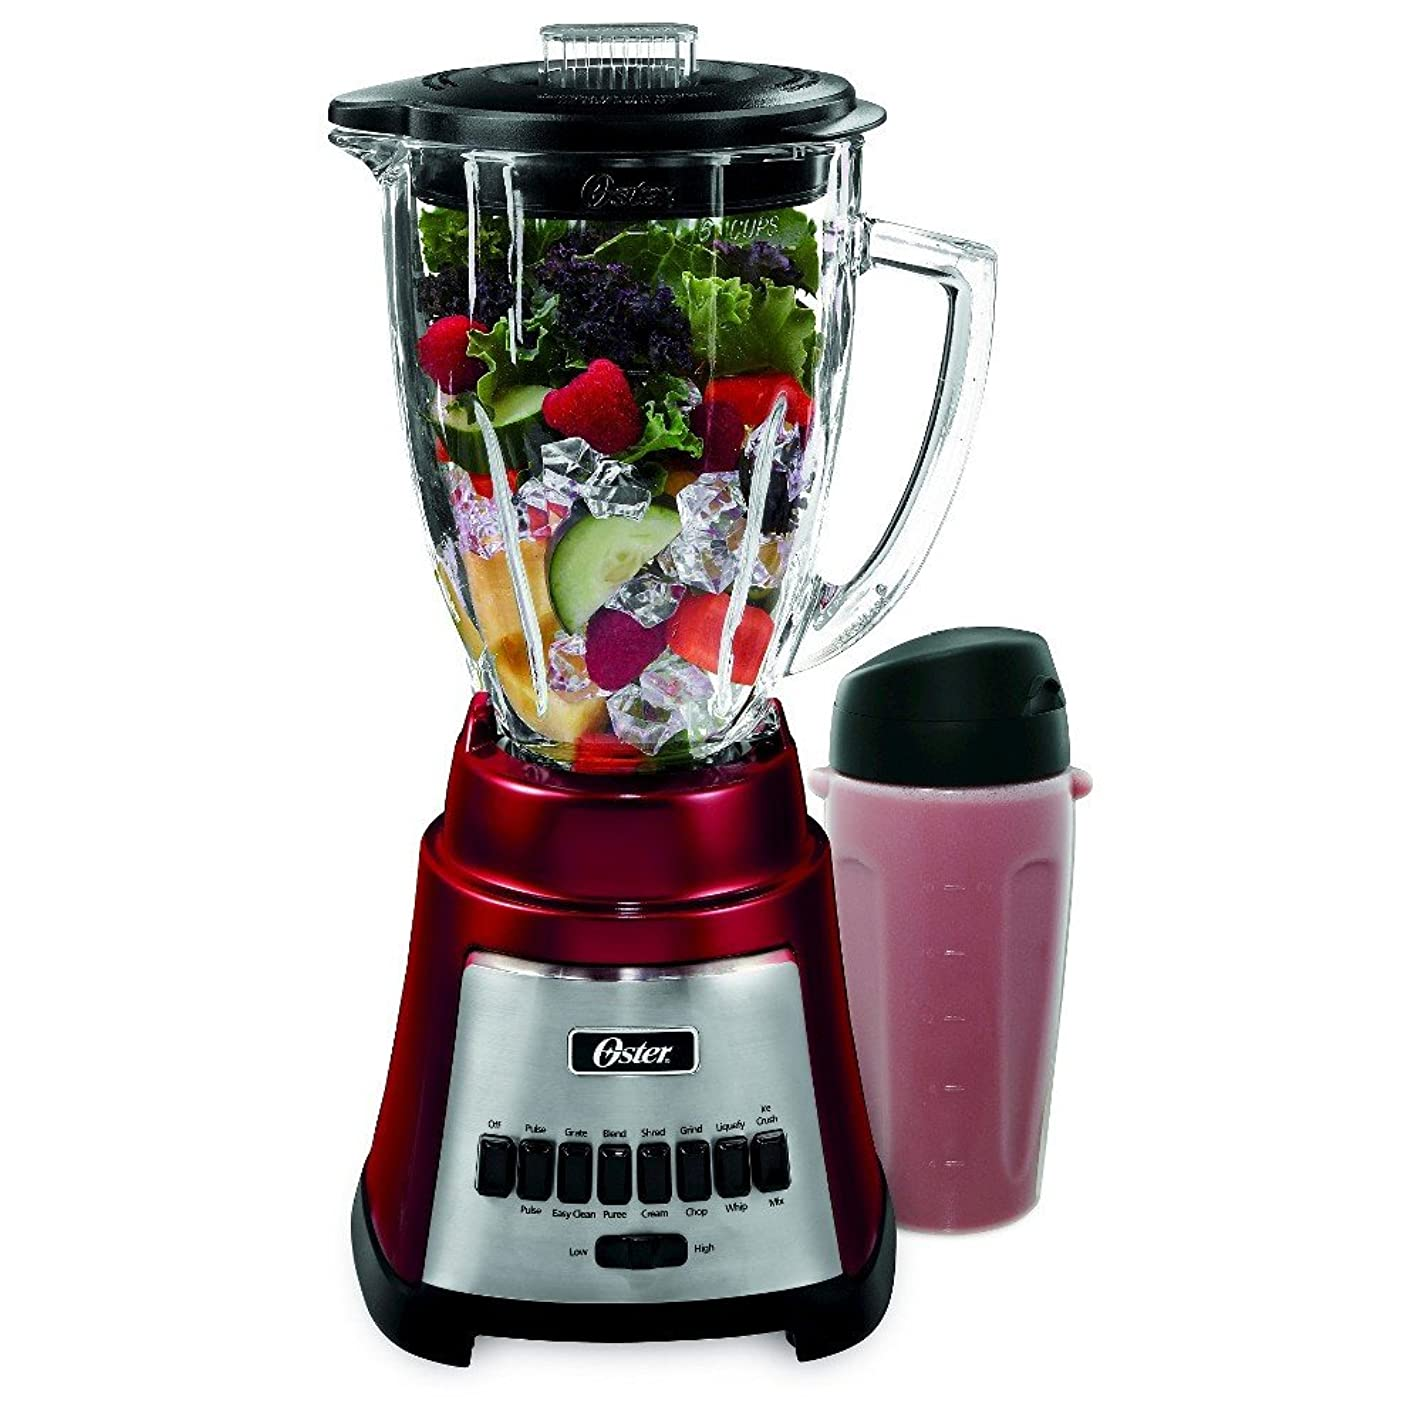 Oster BLSTFG-RBG 6-Cup Glass Jar 12-Speed Blender Red